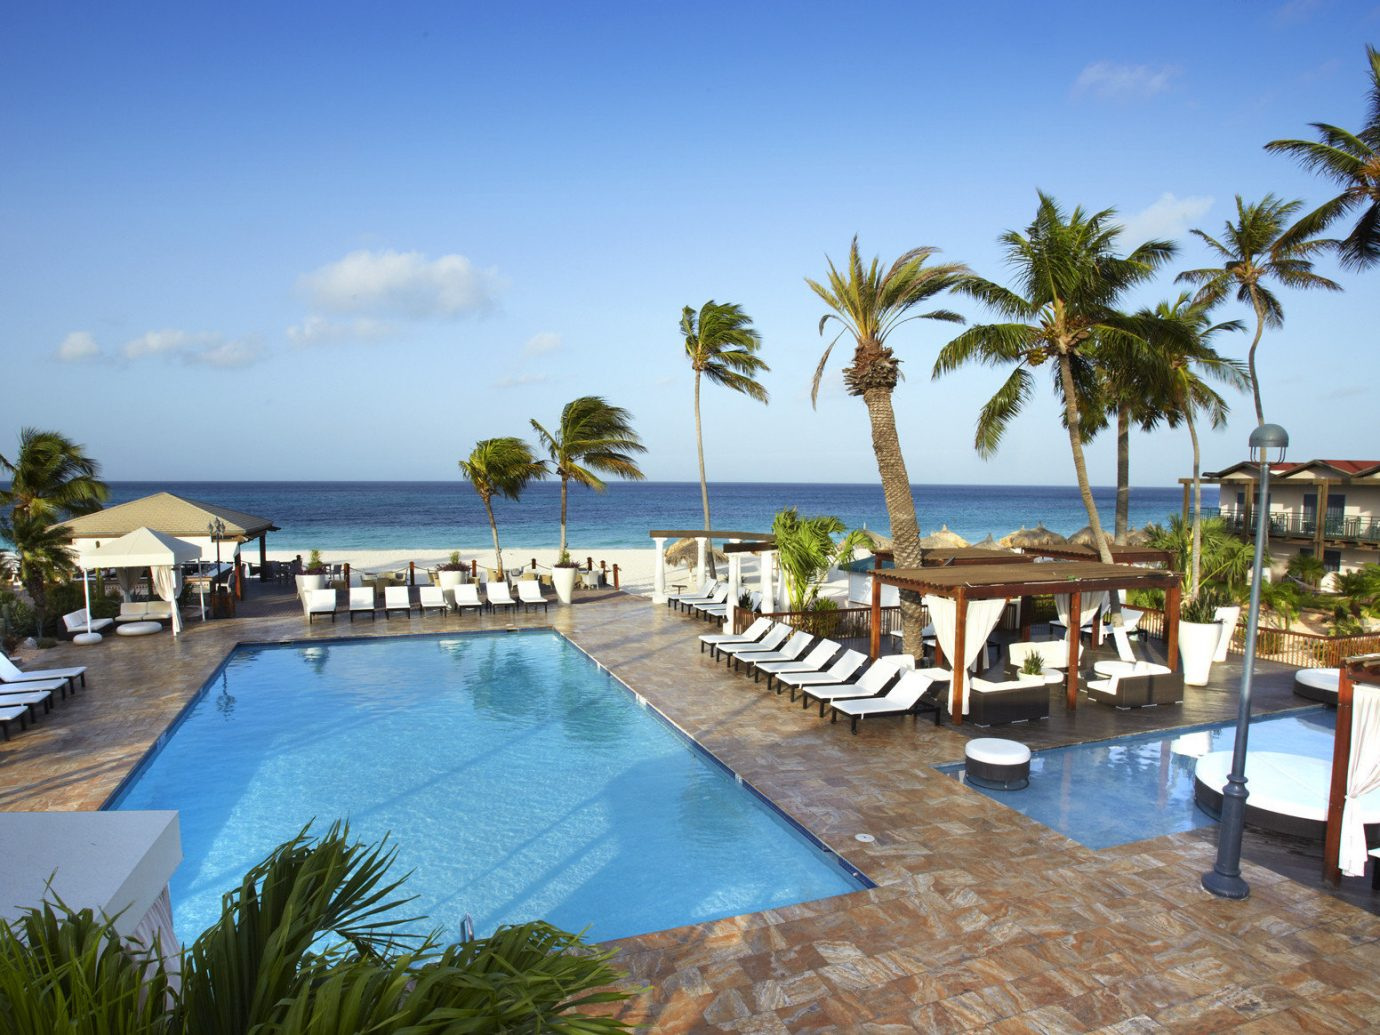 Hotels Romance tree outdoor sky water umbrella Resort chair palm swimming pool Beach property leisure estate vacation Pool Villa caribbean condominium real estate resort town furniture bay lawn Deck marina lined shore swimming several Island